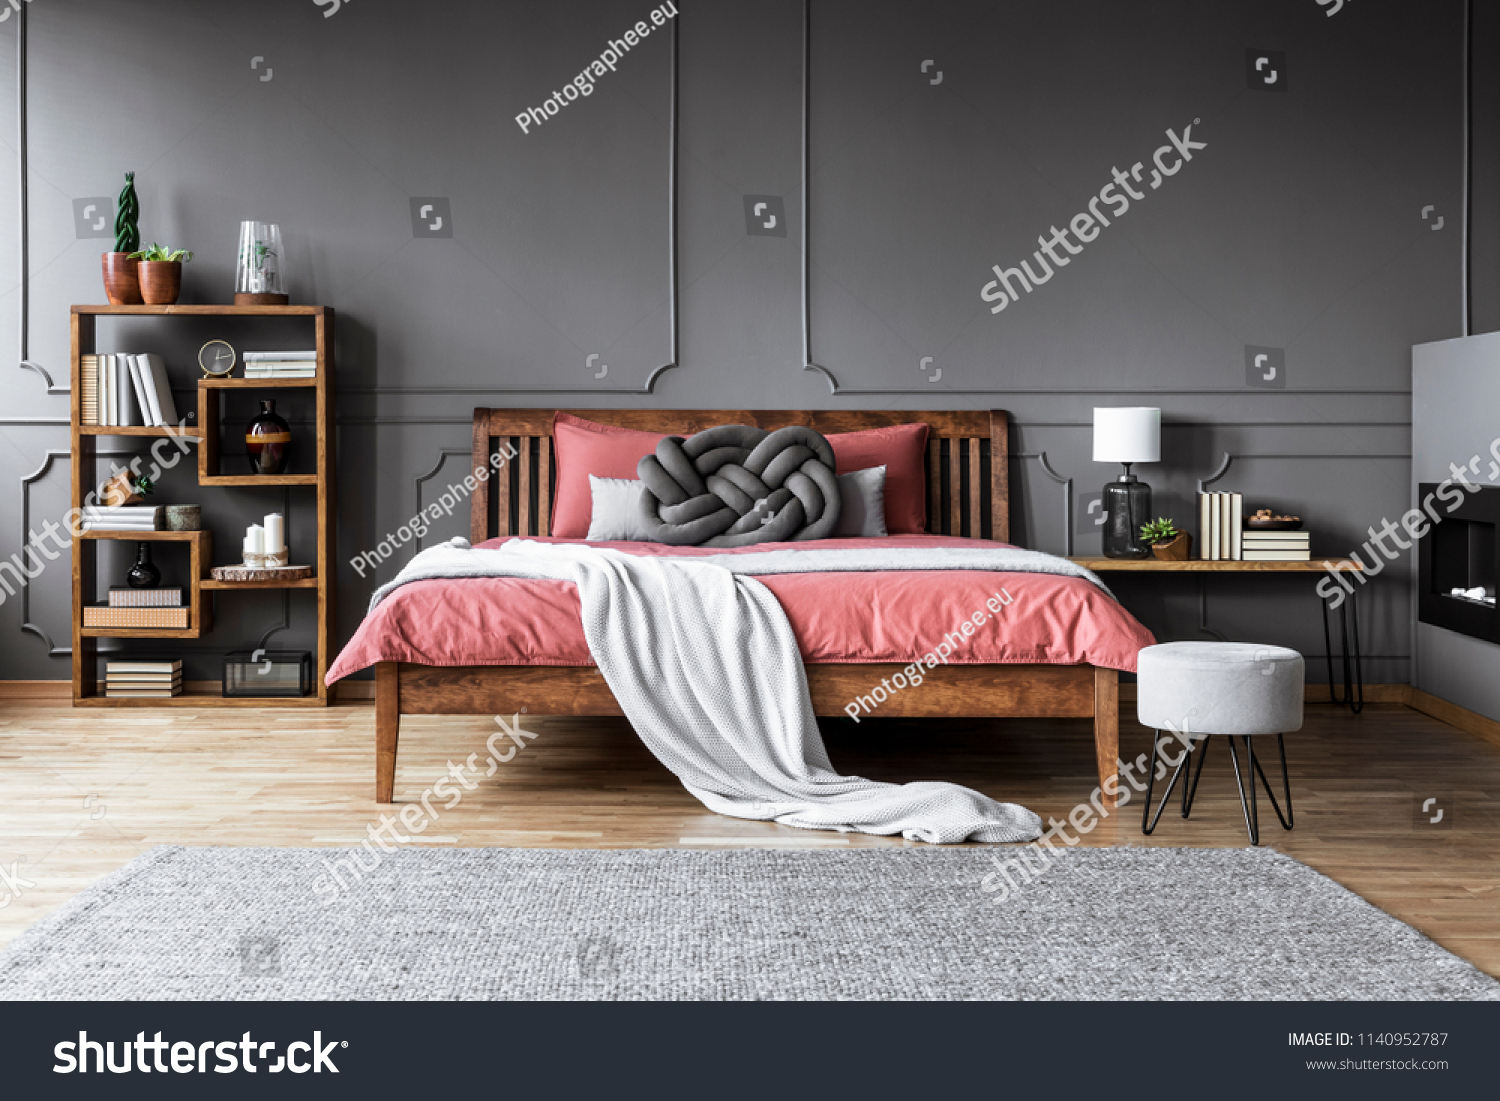 Stool Next Pink Wooden Bed Grey Stock Photo Edit Now 1140952787